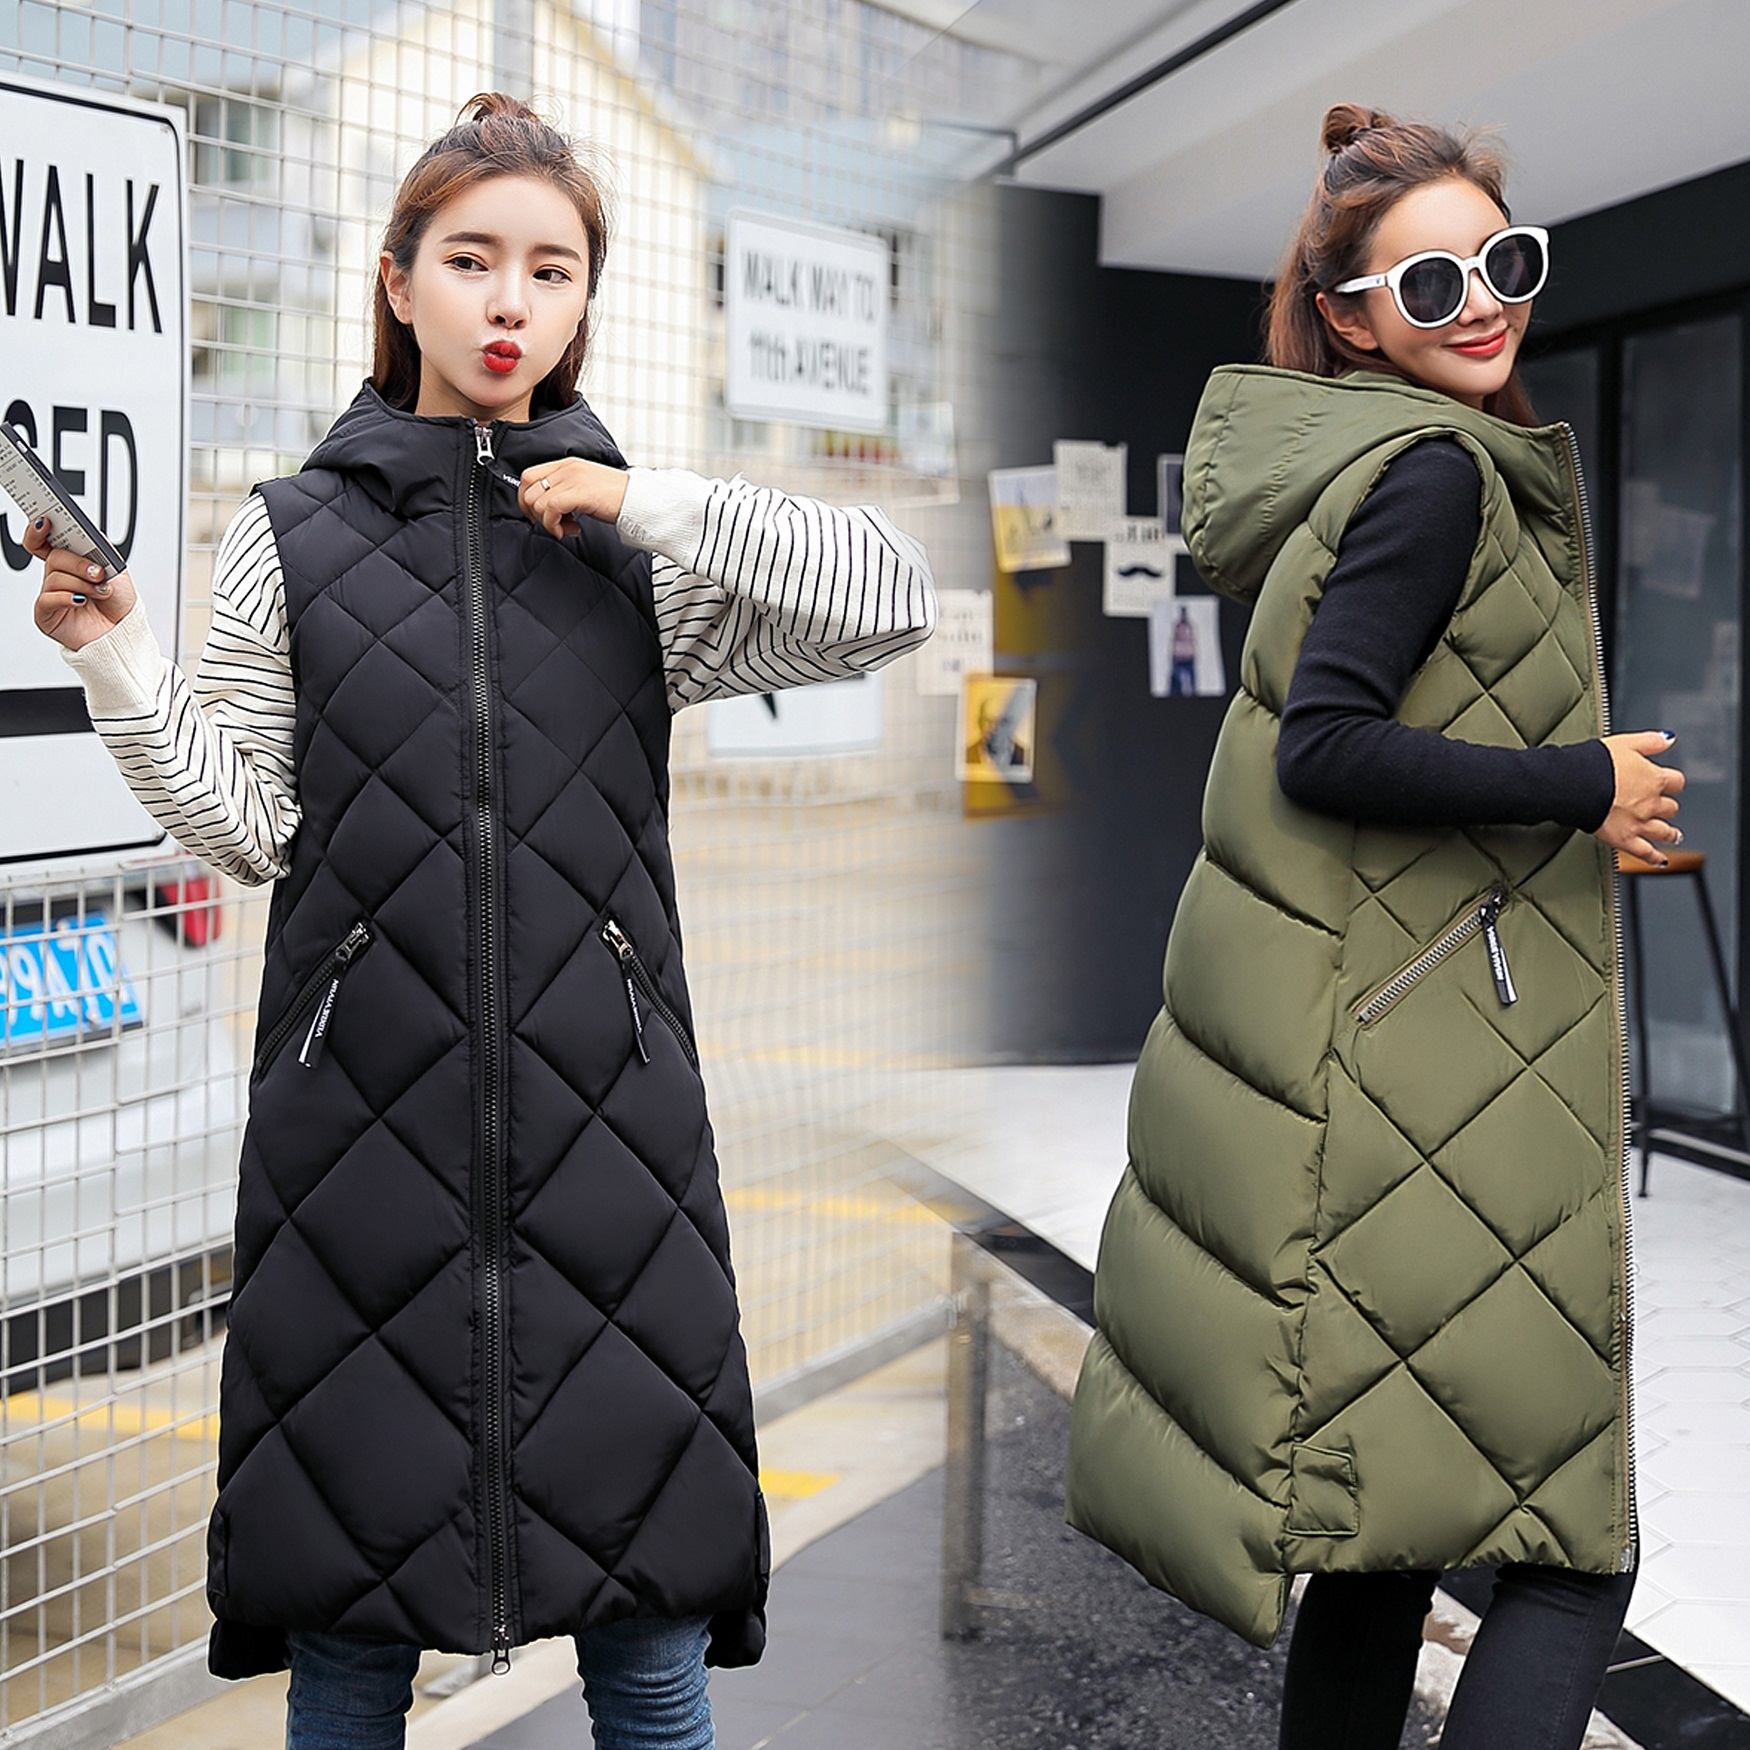 Cheap wholesale 2018 new summer winter Hot selling women's fashion casual warm jacket female bisic coats L195(China)